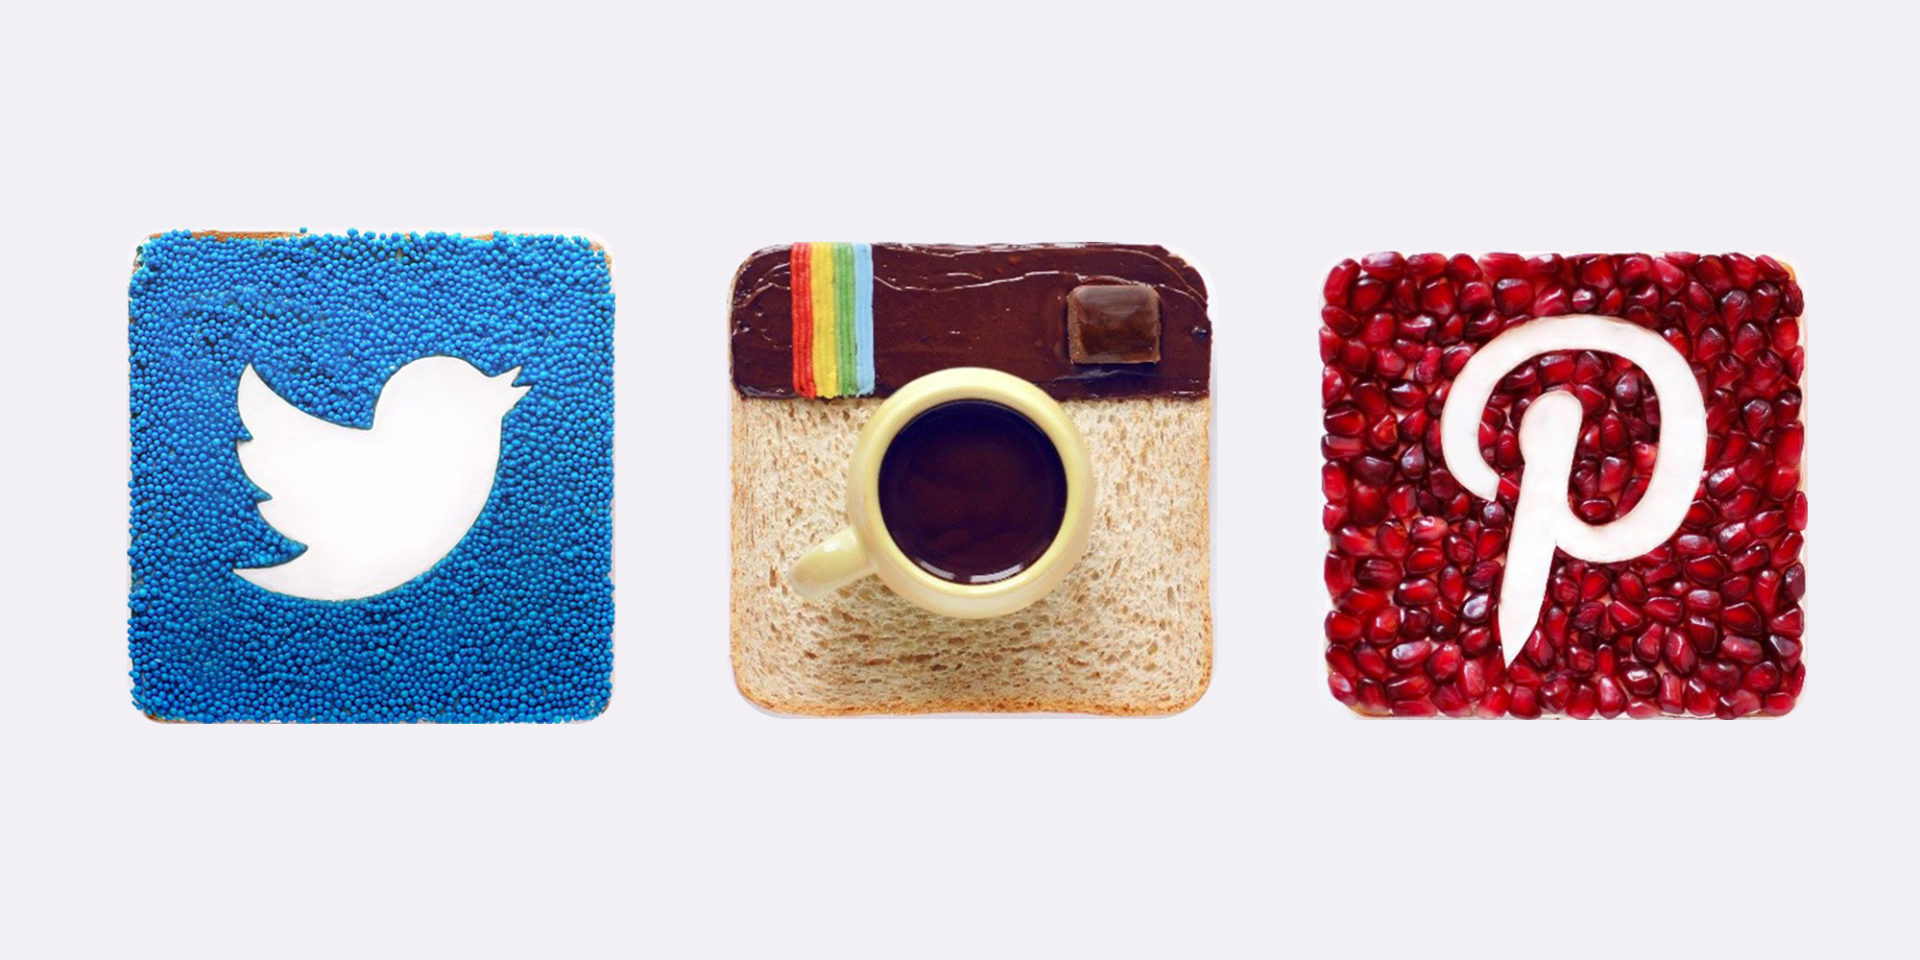 Food Art : des compositions culinaires social media !